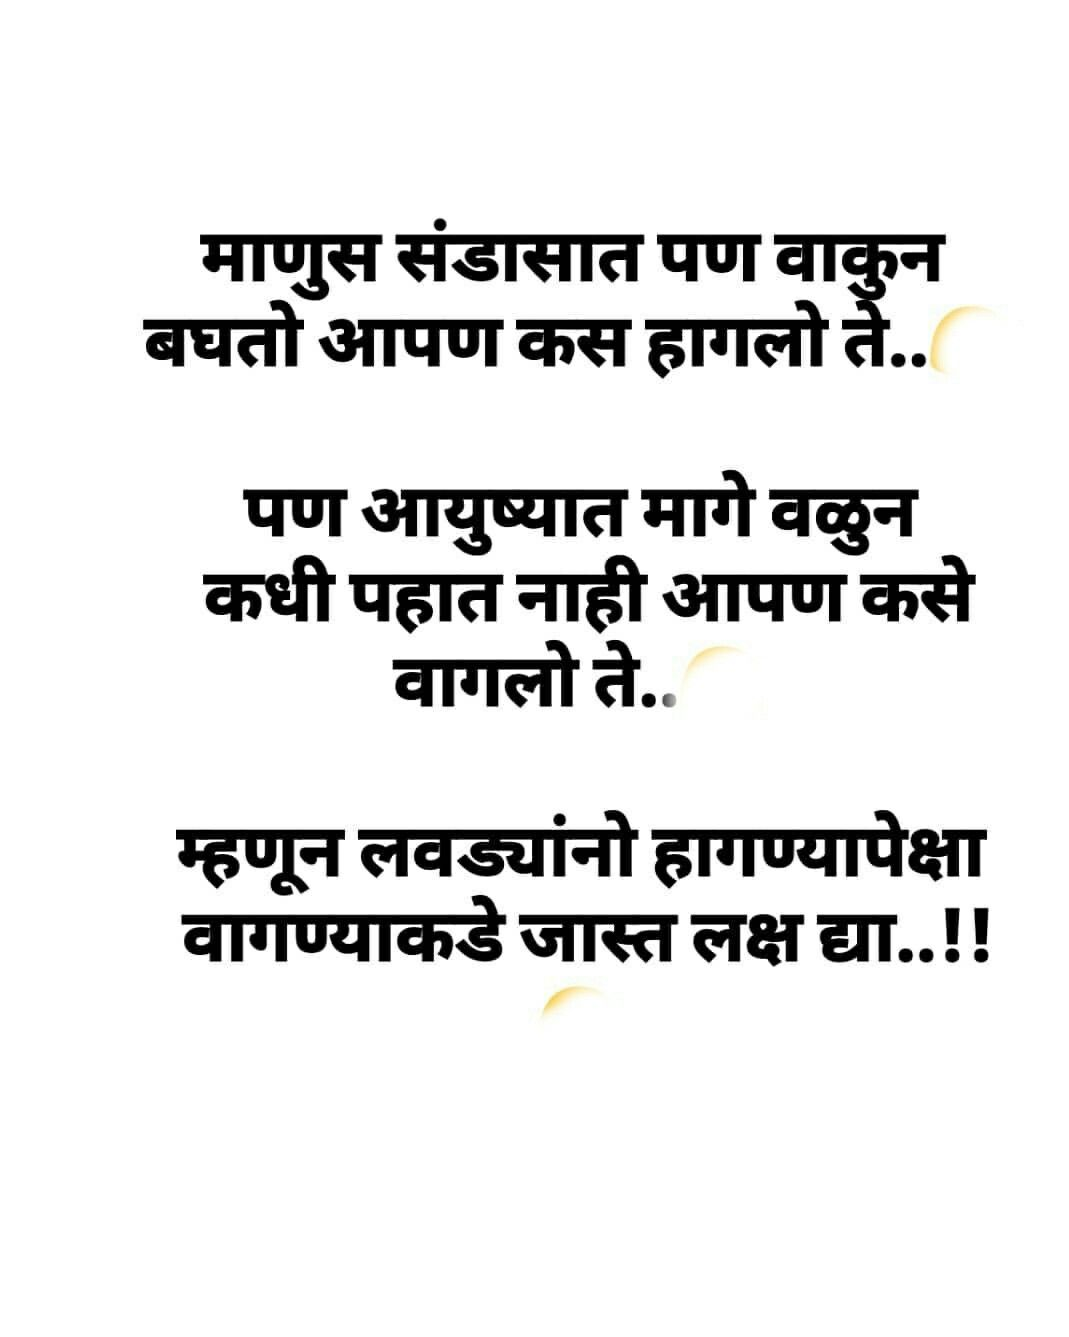 Catch Me For More Like This Insta Iampratik 26 Or 917385118007 Comedy Quotes Marathi Quotes Message Quotes